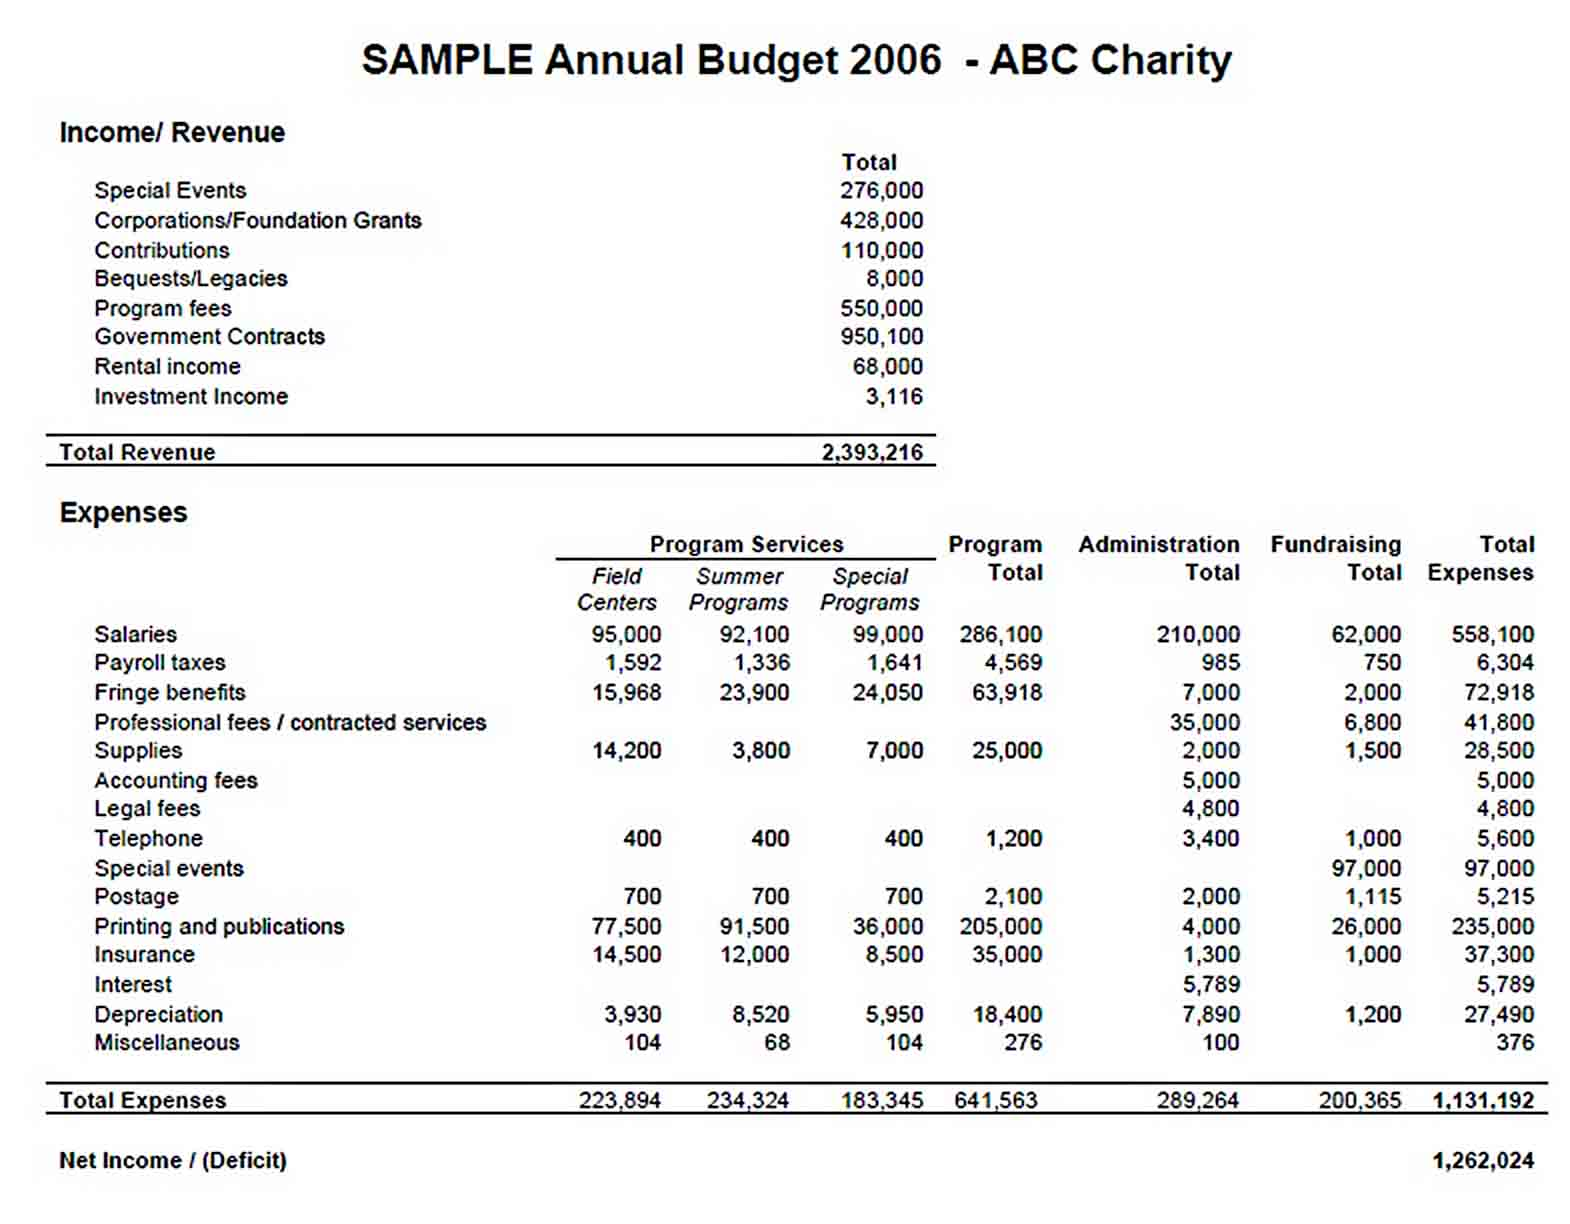 Sample Annual Budget sample